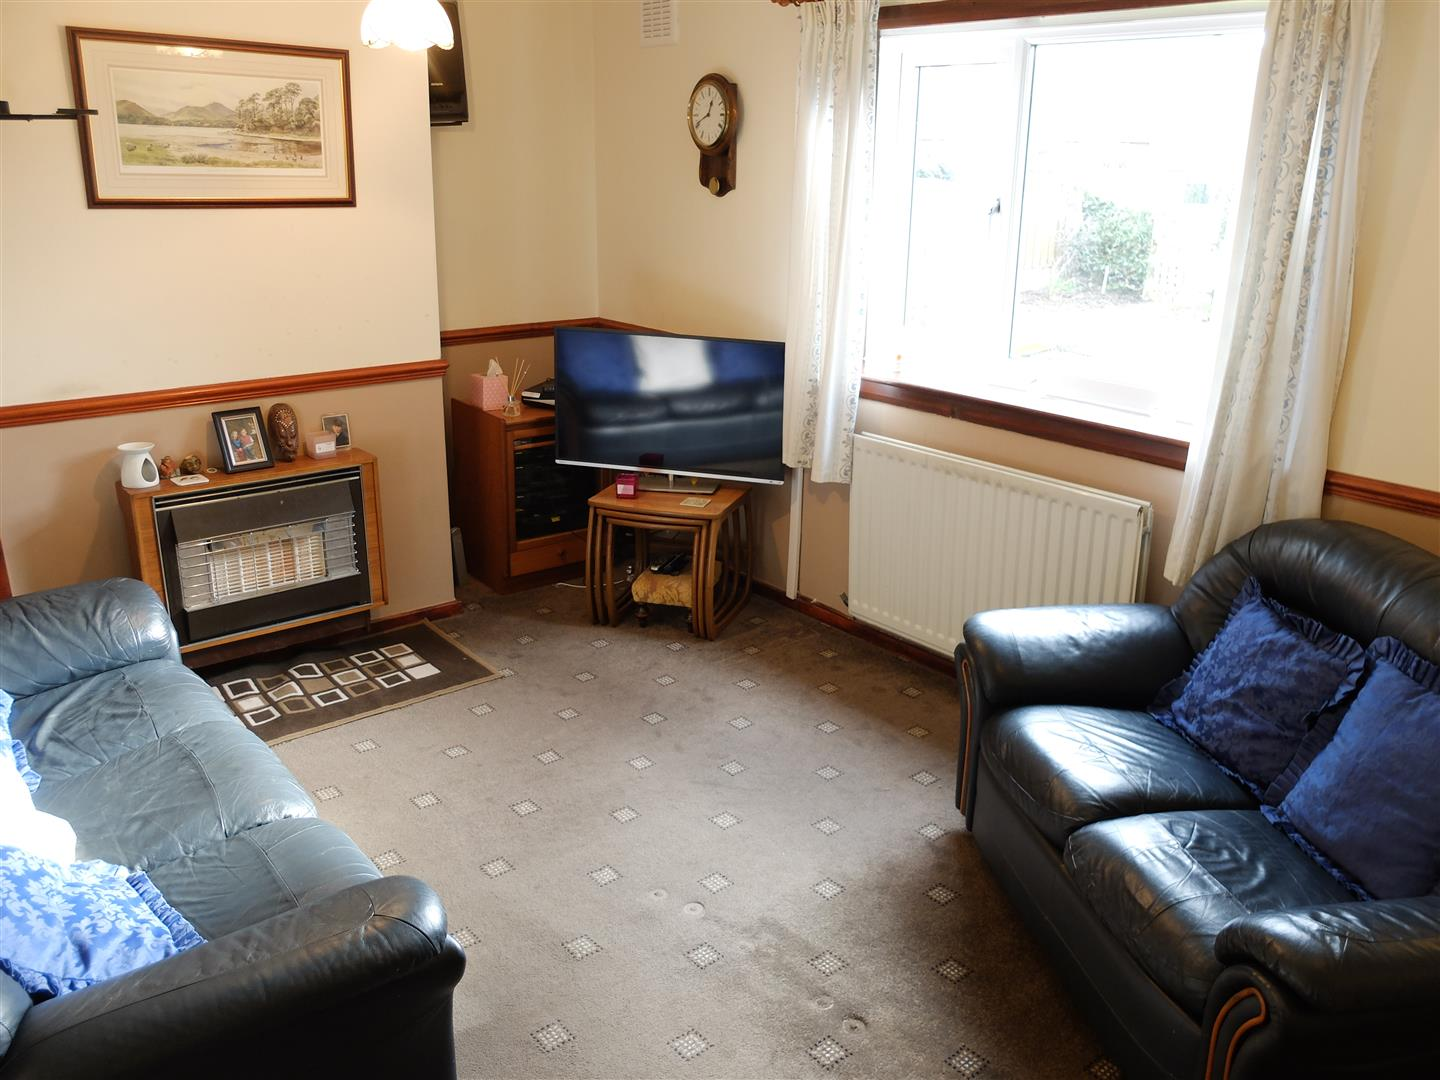 3 Bedrooms House - Semi-Detached For Sale 2 The Oval Carlisle